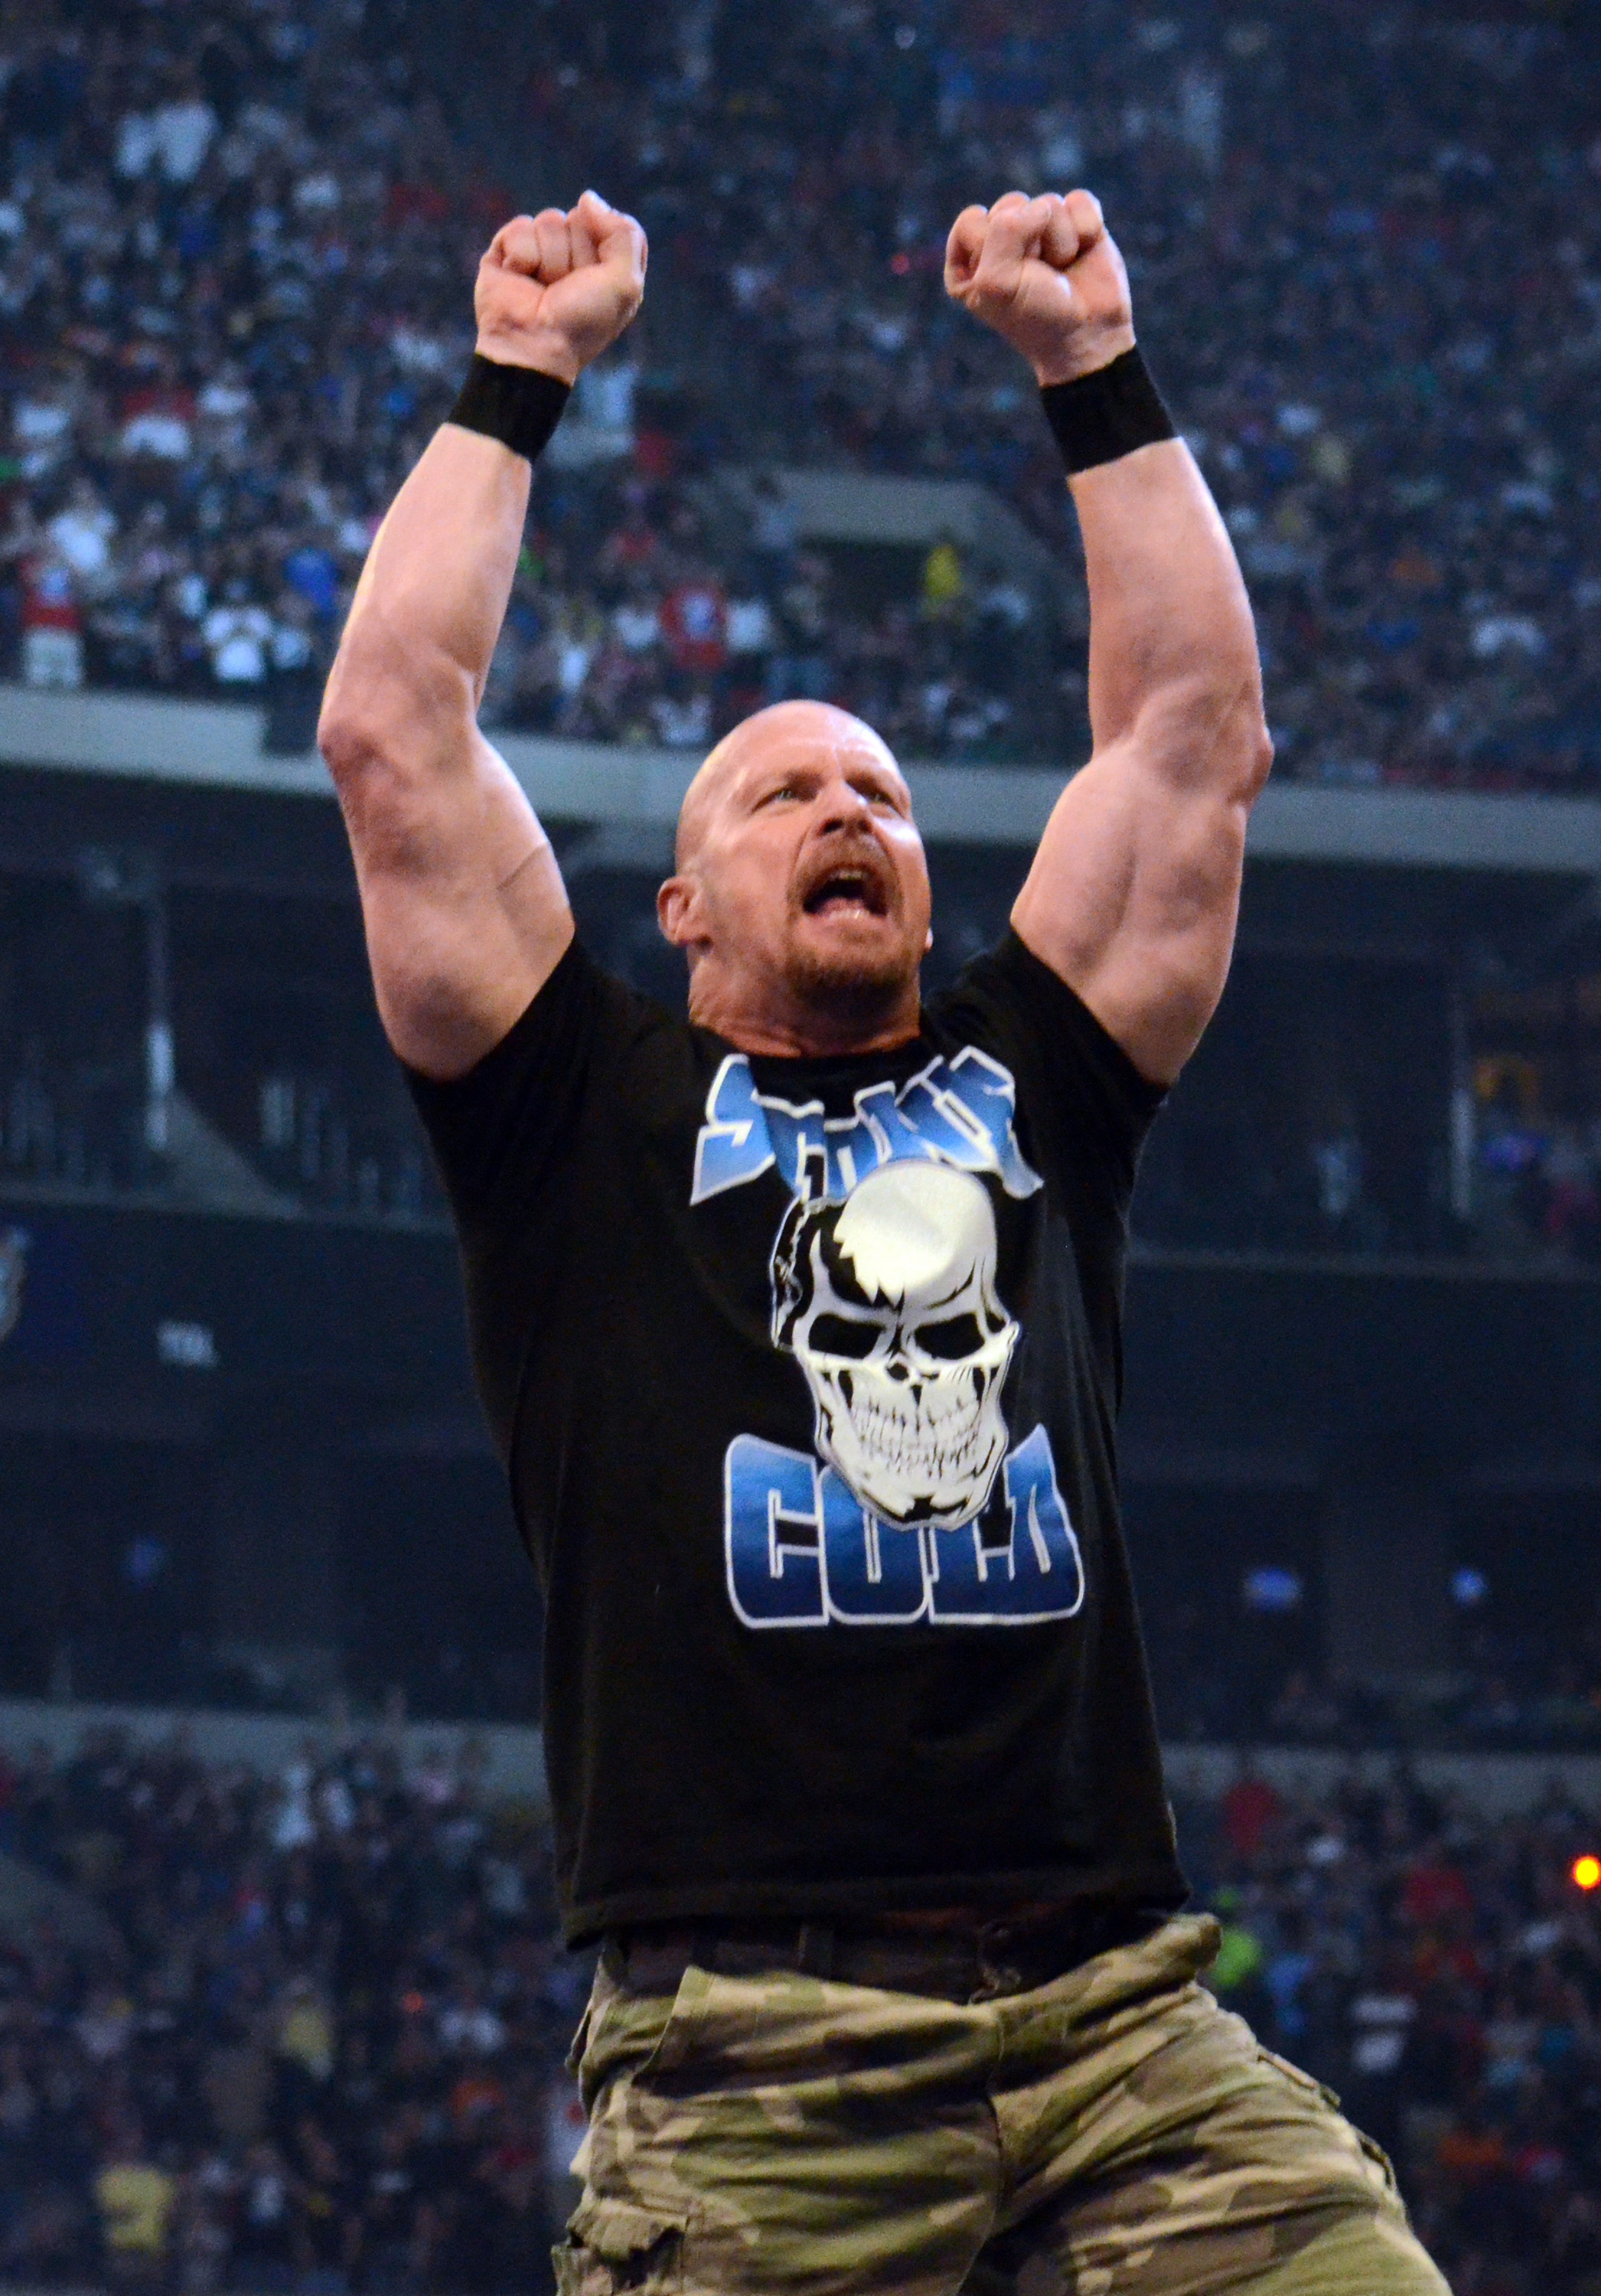 Stone Cold Steve Austin : Stone cold steve austin reveals the wwe stunt that nearly